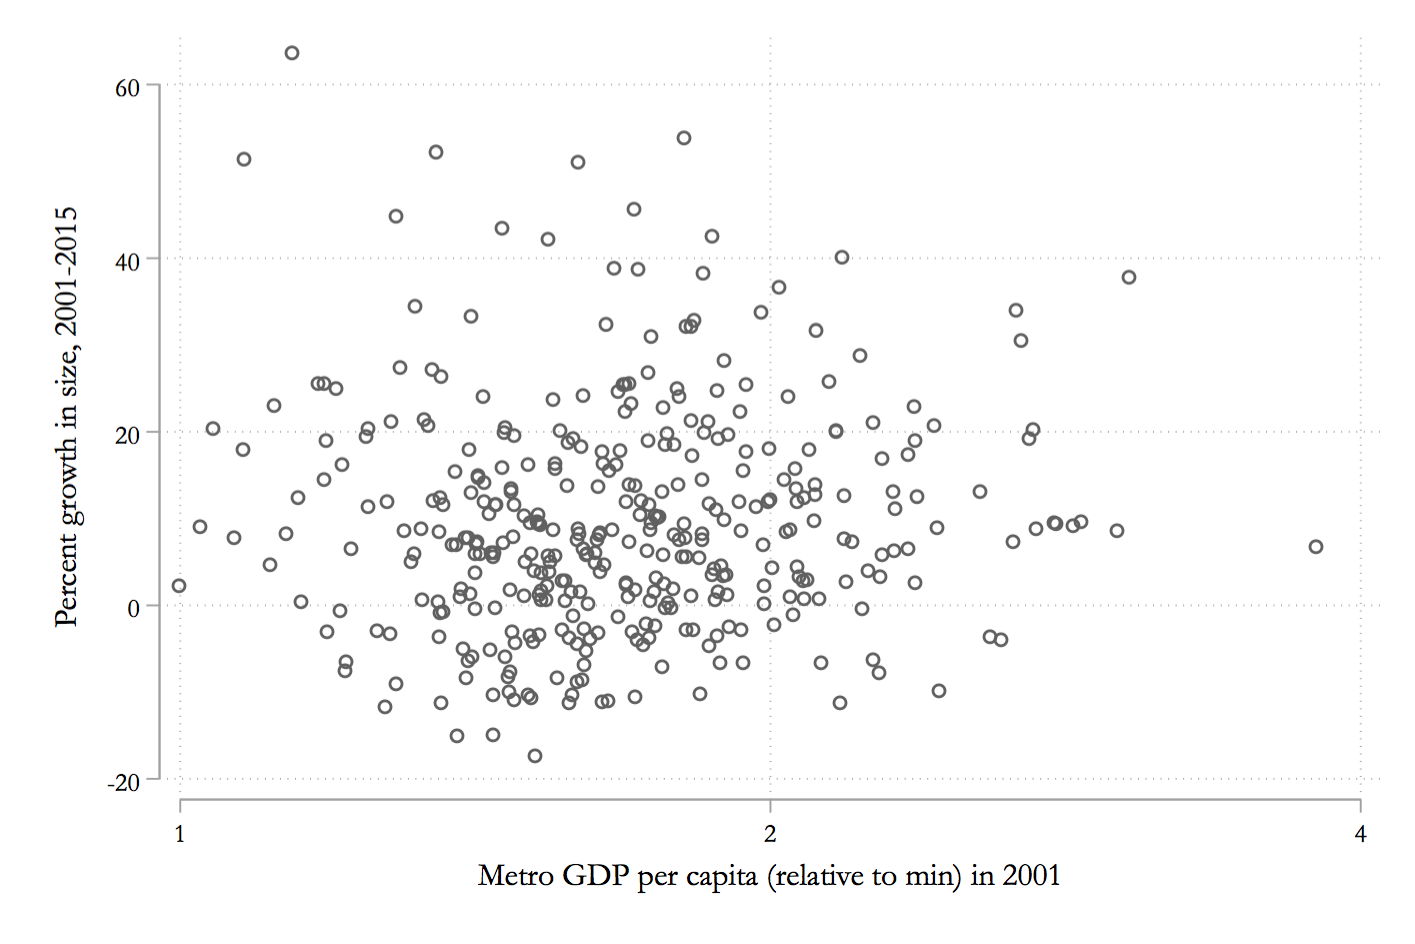 Growth in metro size relative to metro GDP per capita